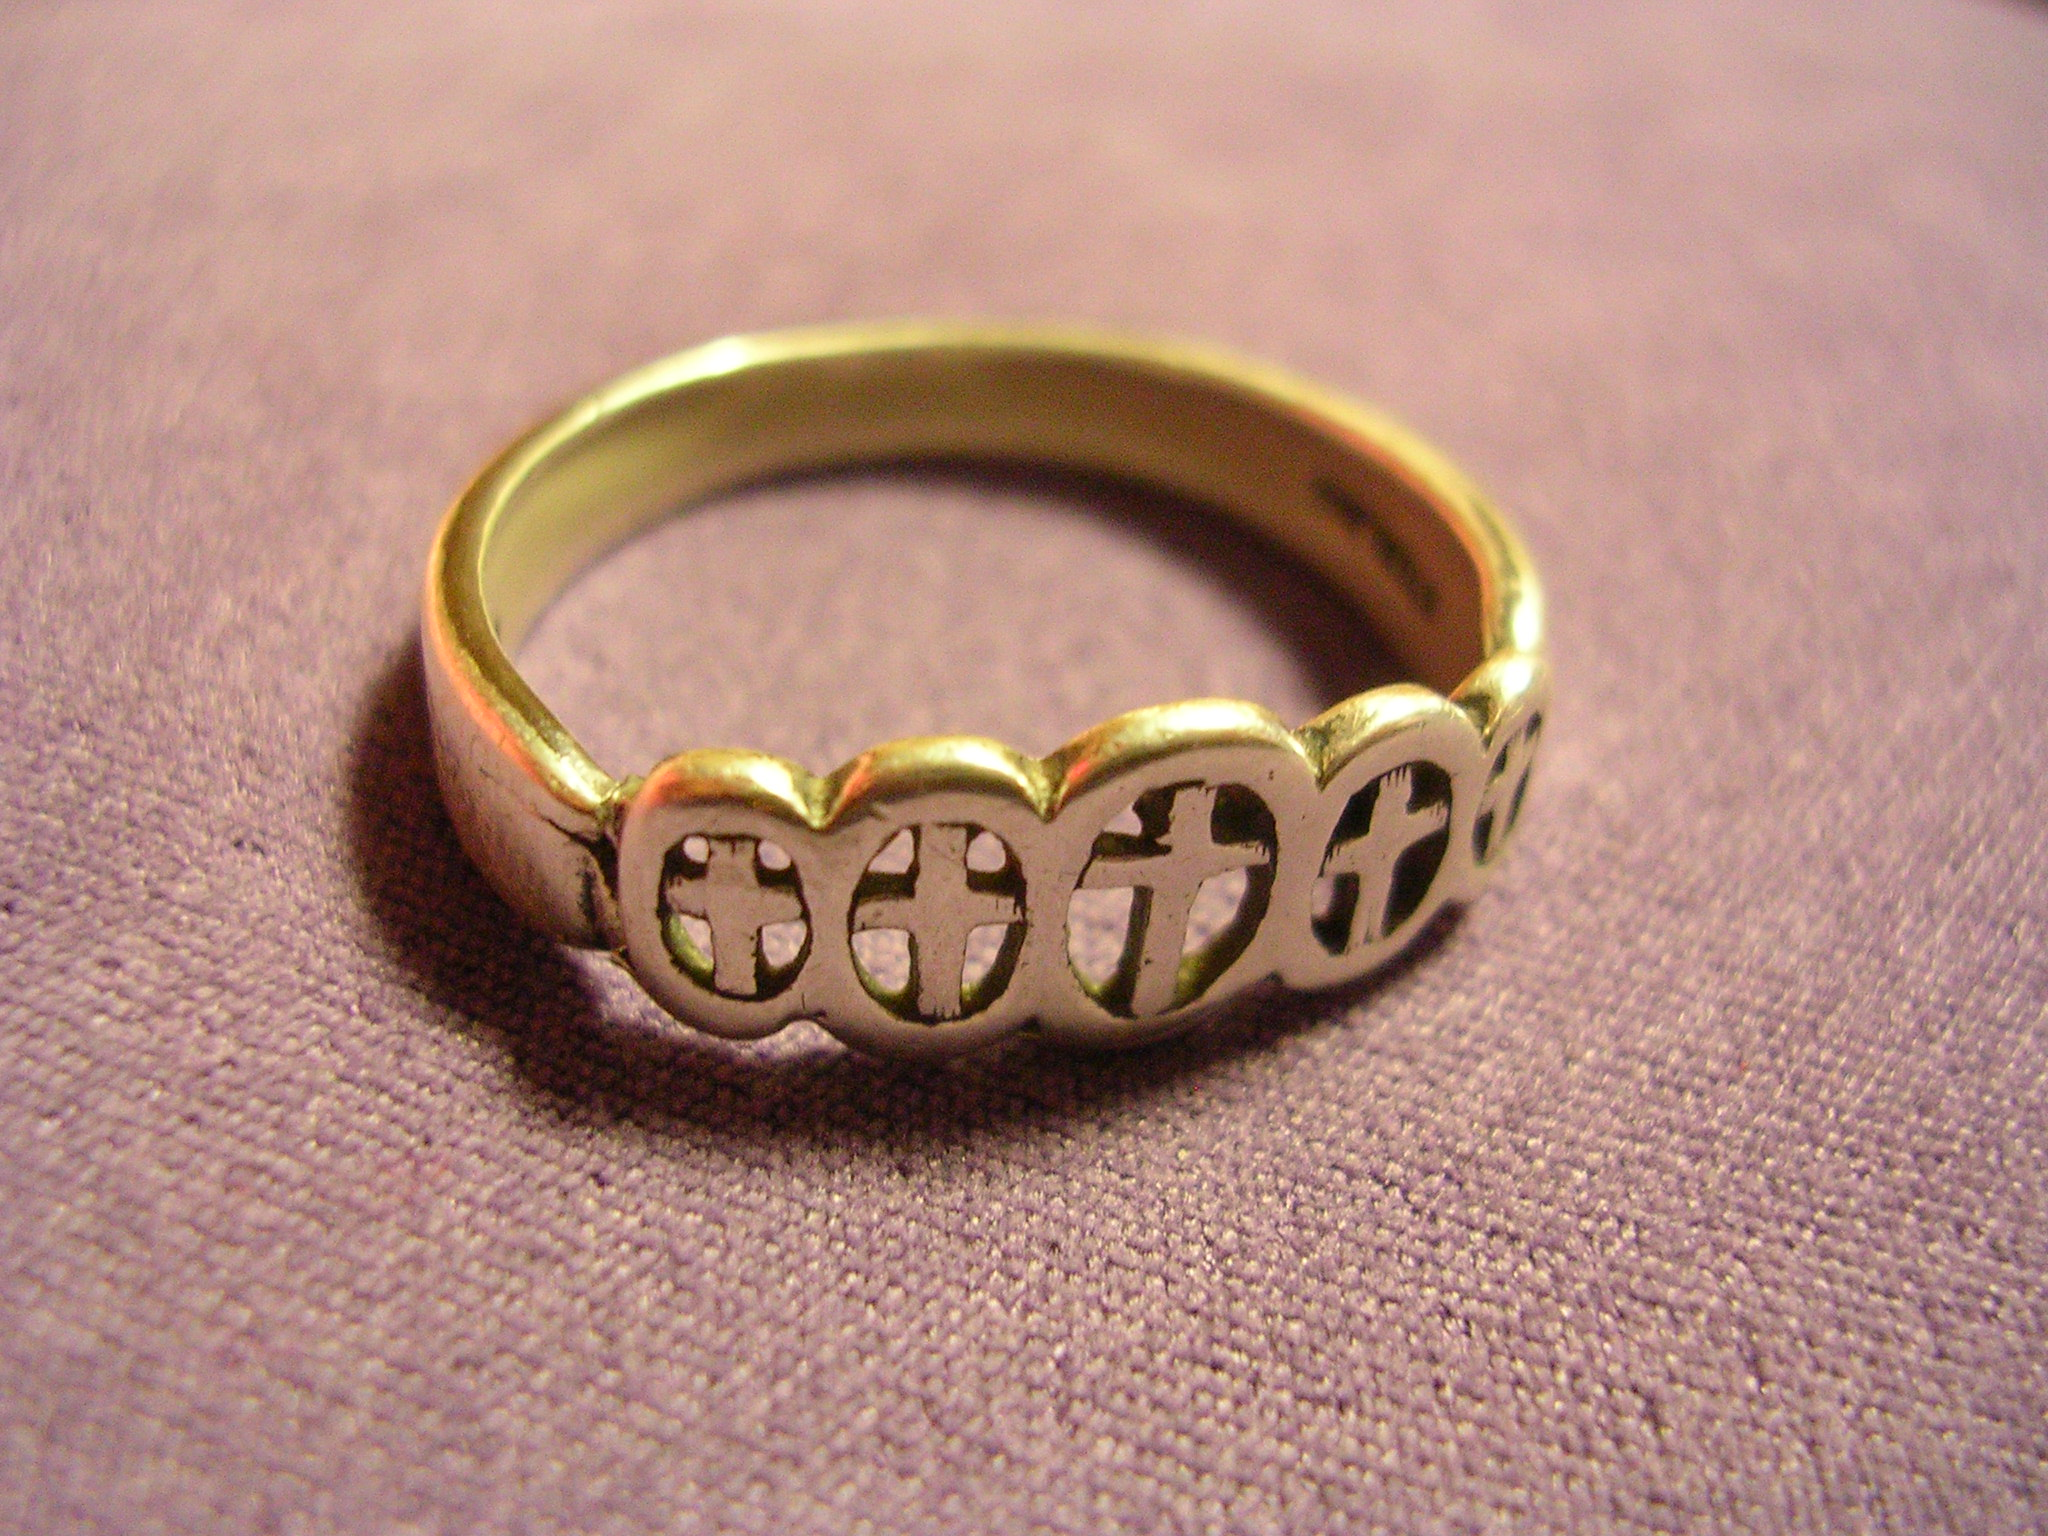 Chastity_ring